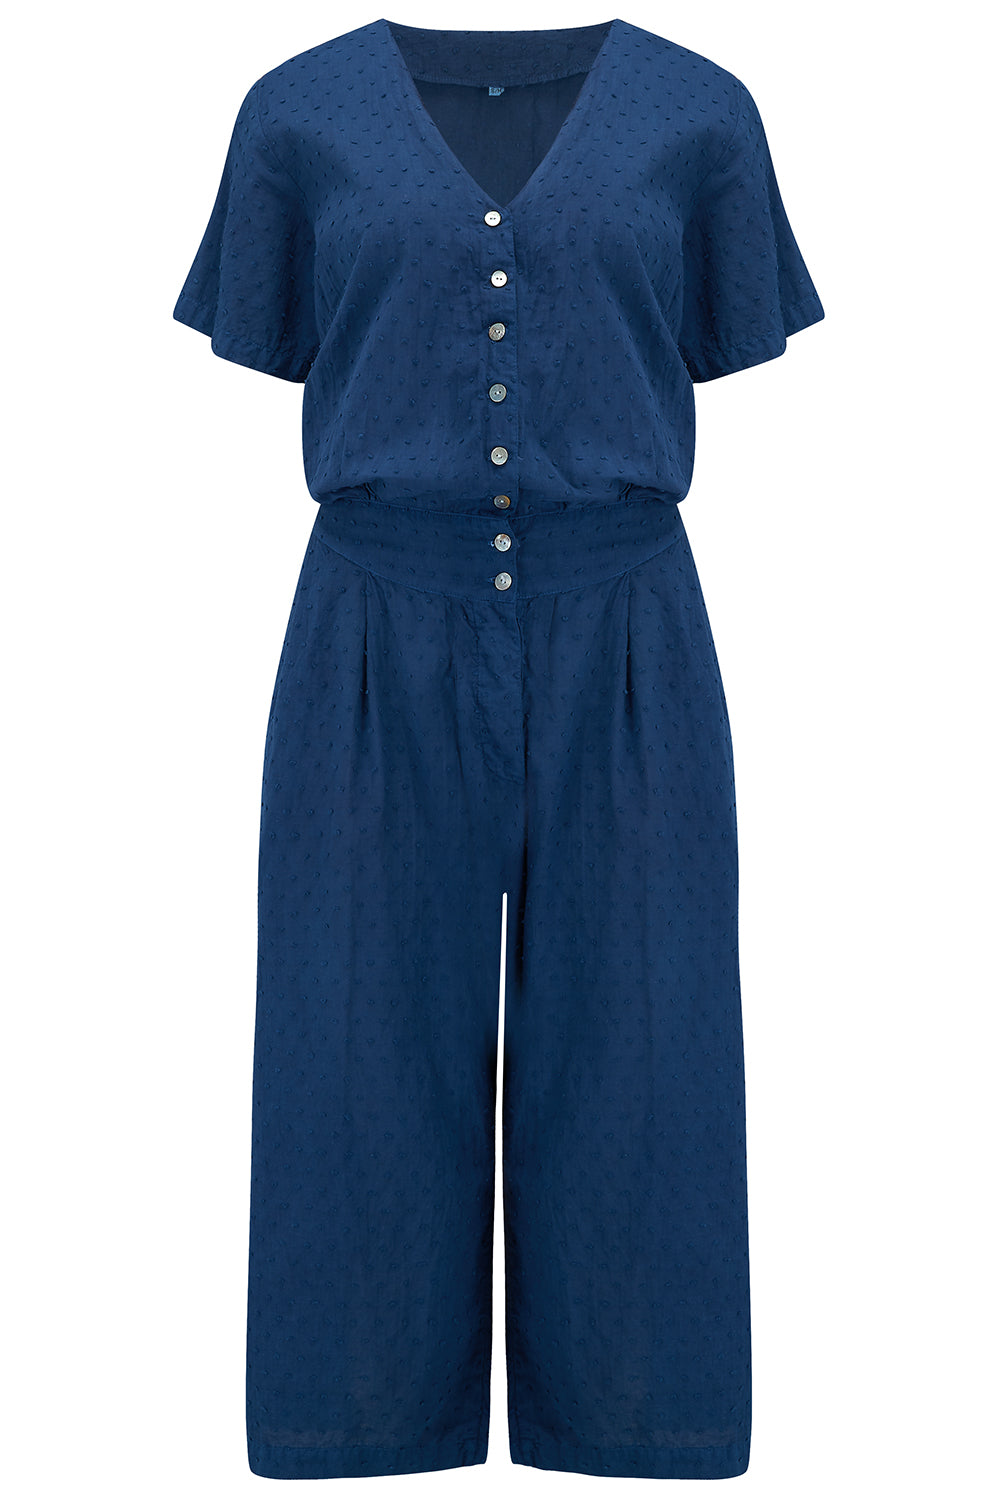 KEPSI JUMPSUIT - NATURAL INDIGO